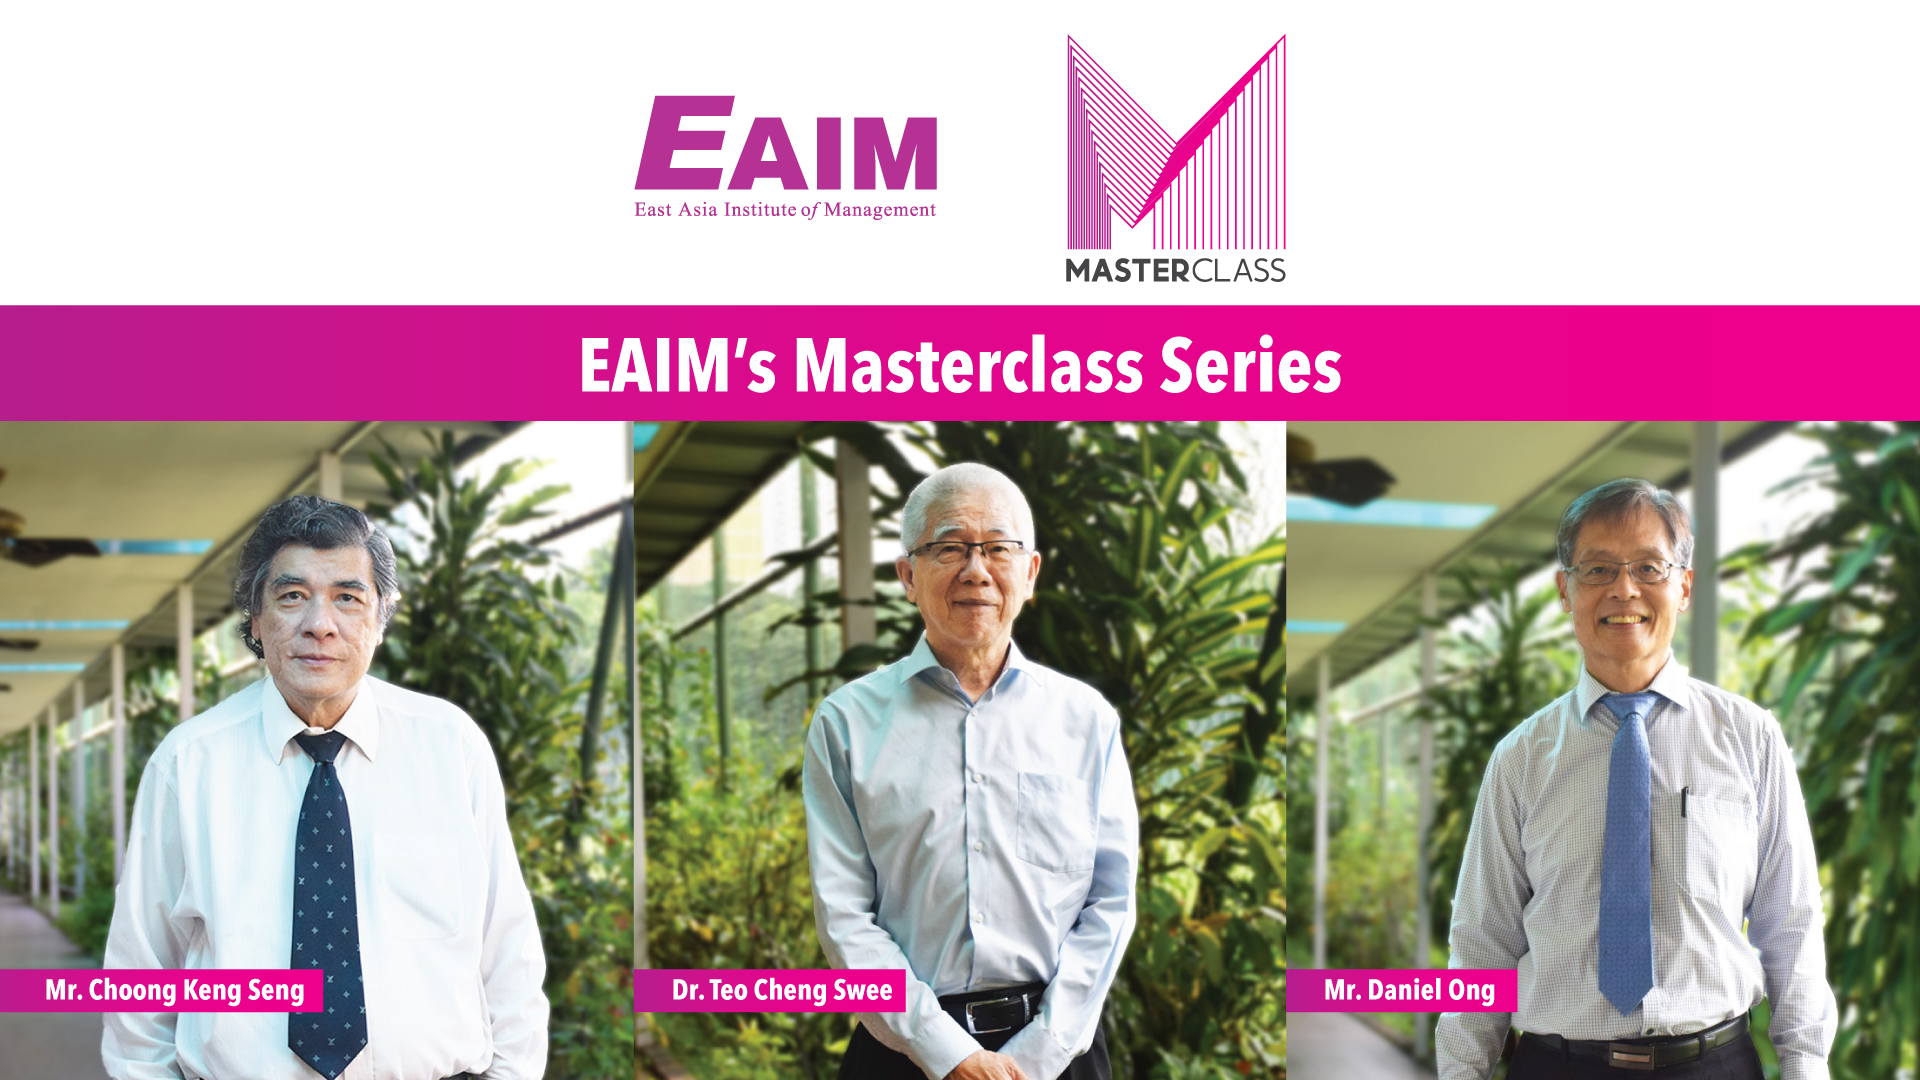 EAIM's first Masterclass Series has concluded successfully